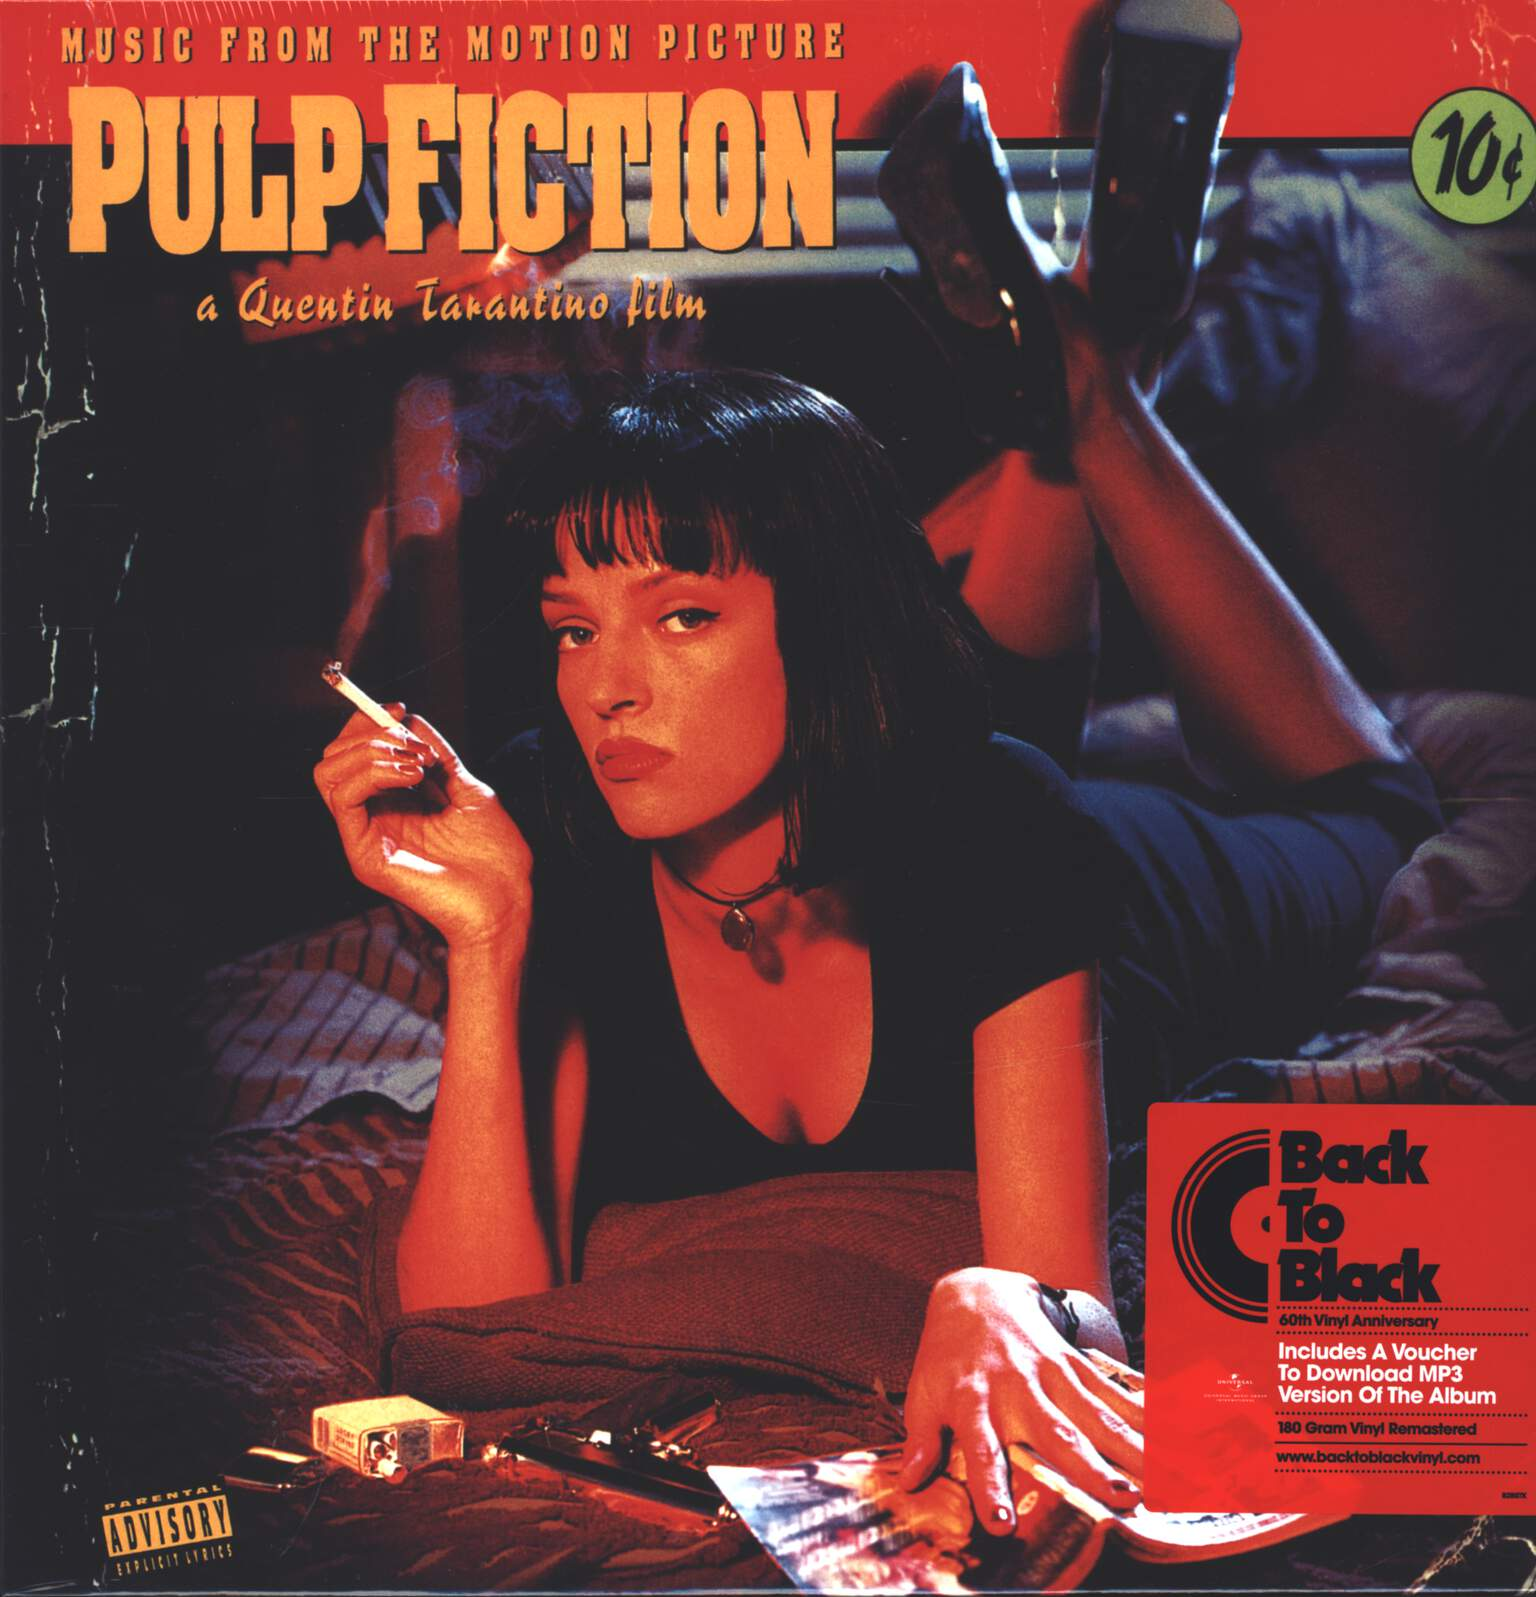 Various: Pulp Fiction (Music From The Motion Picture), 1×LP (Vinyl)